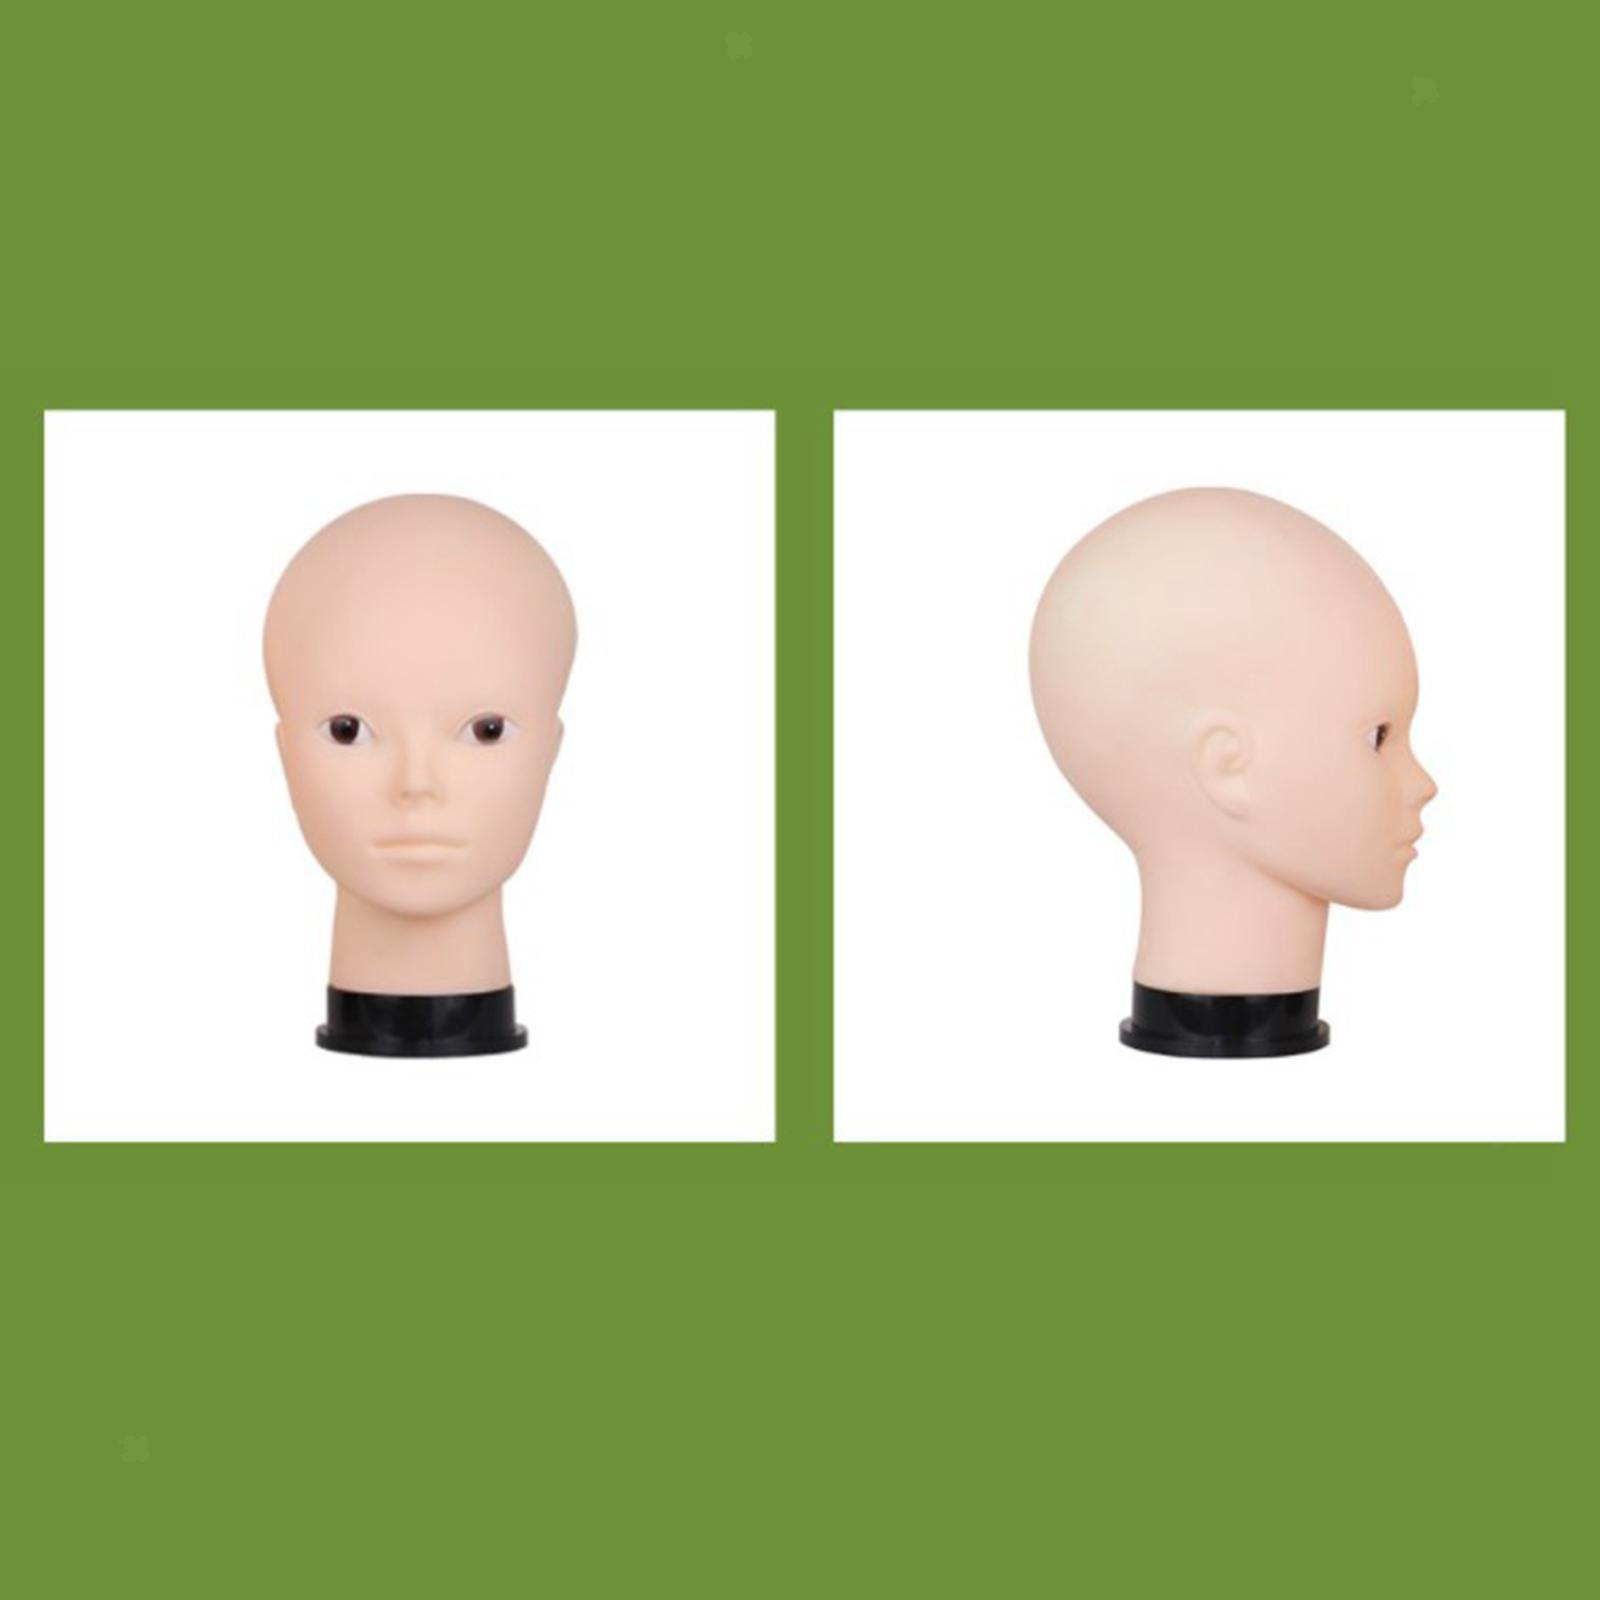 thumbnail 7 - Male-female bald mannequin head wigs hats glasses scarves jewelry